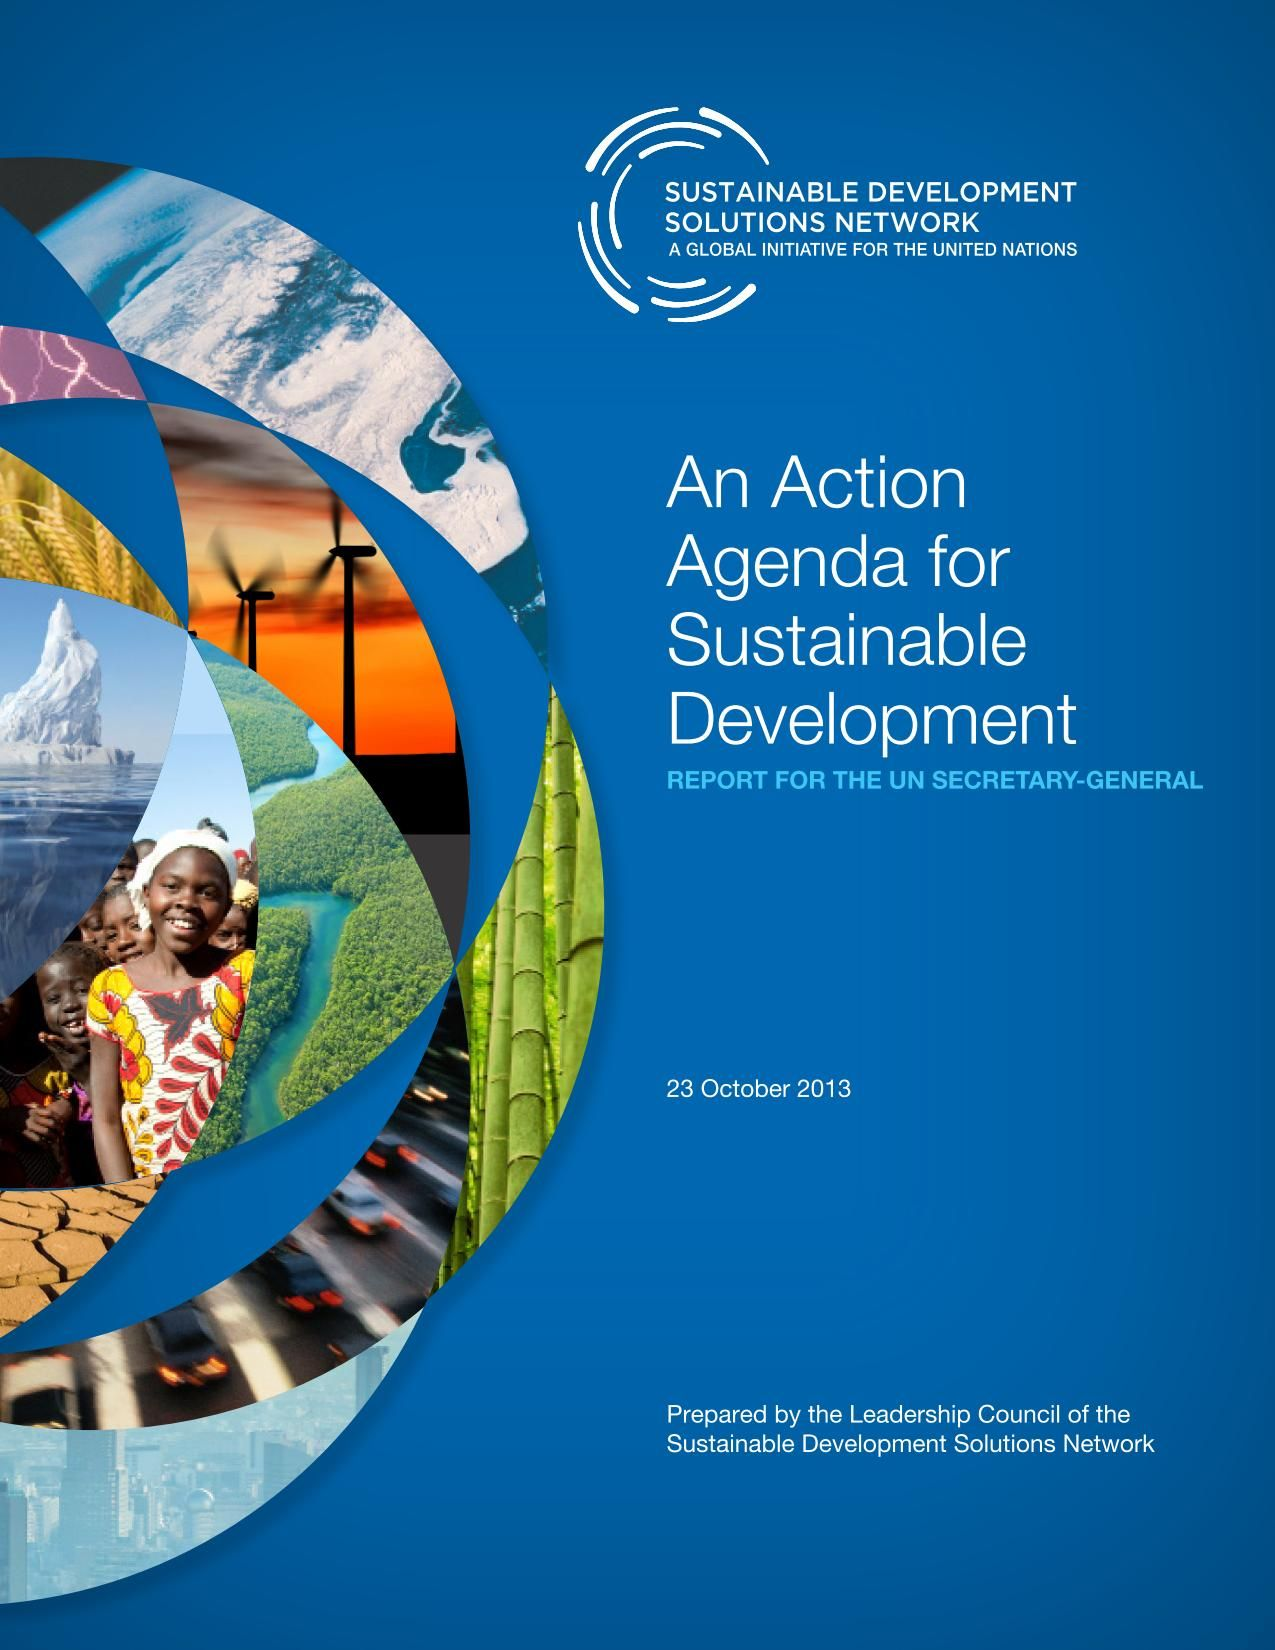 Book Cover Design Principles : Cover an action agenda for sustainable development the